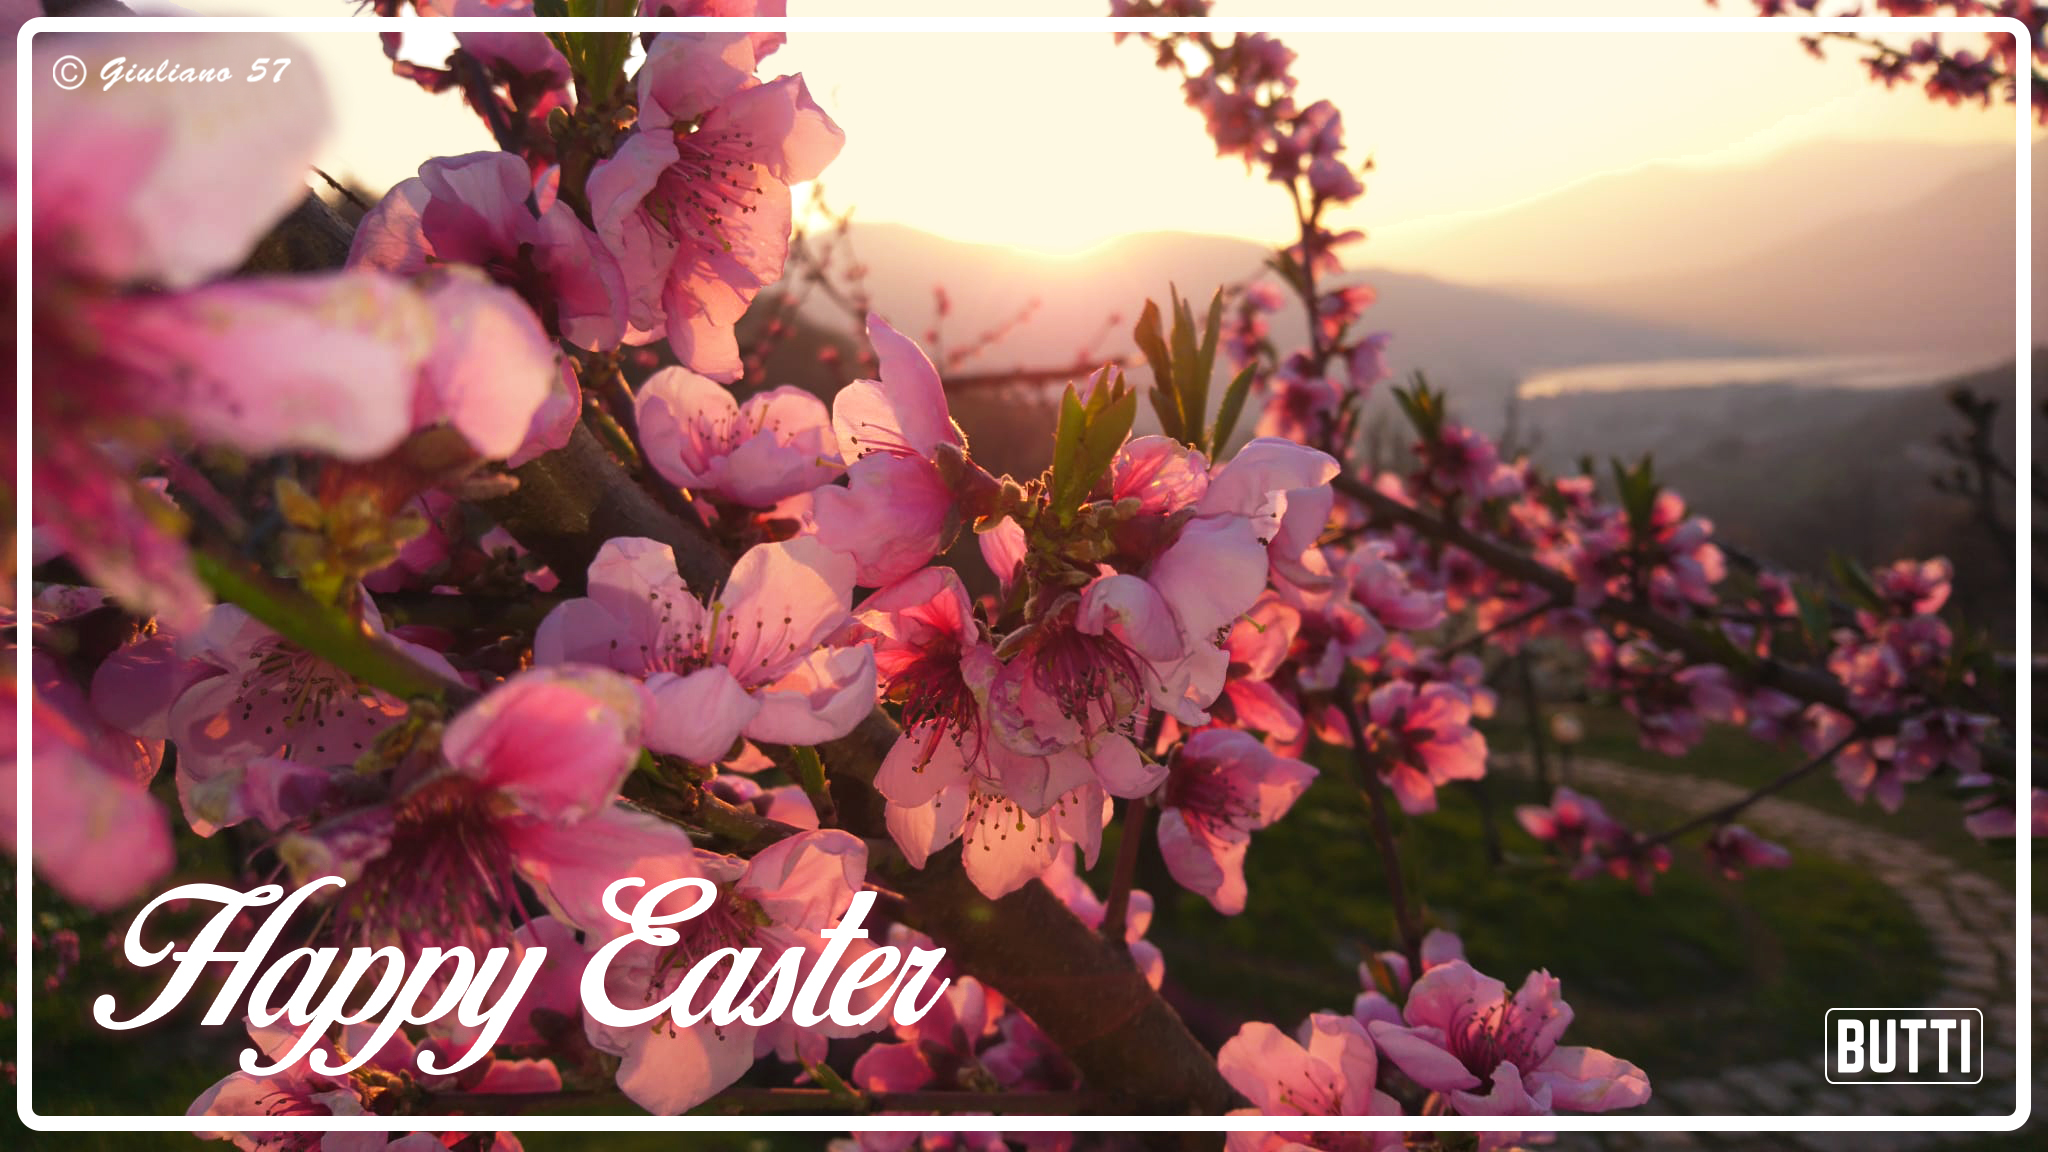 La Butti wishes everyone a Happy Easter!